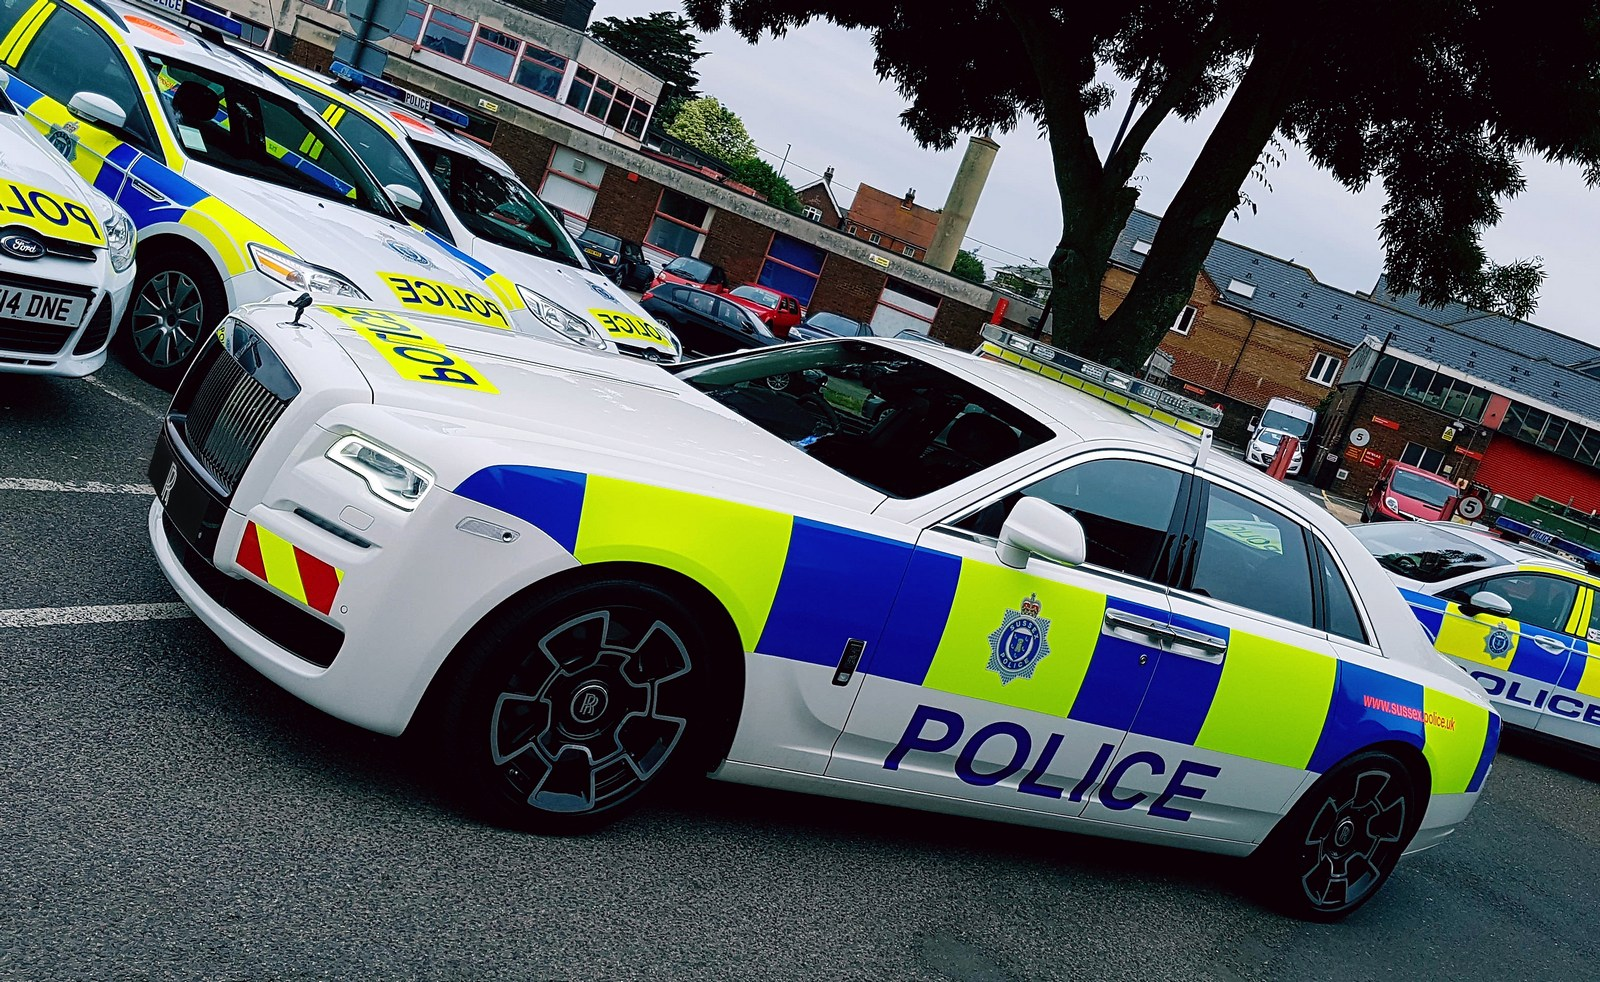 Here S A Rolls Royce Police Car Based On The Ghost Black Badge